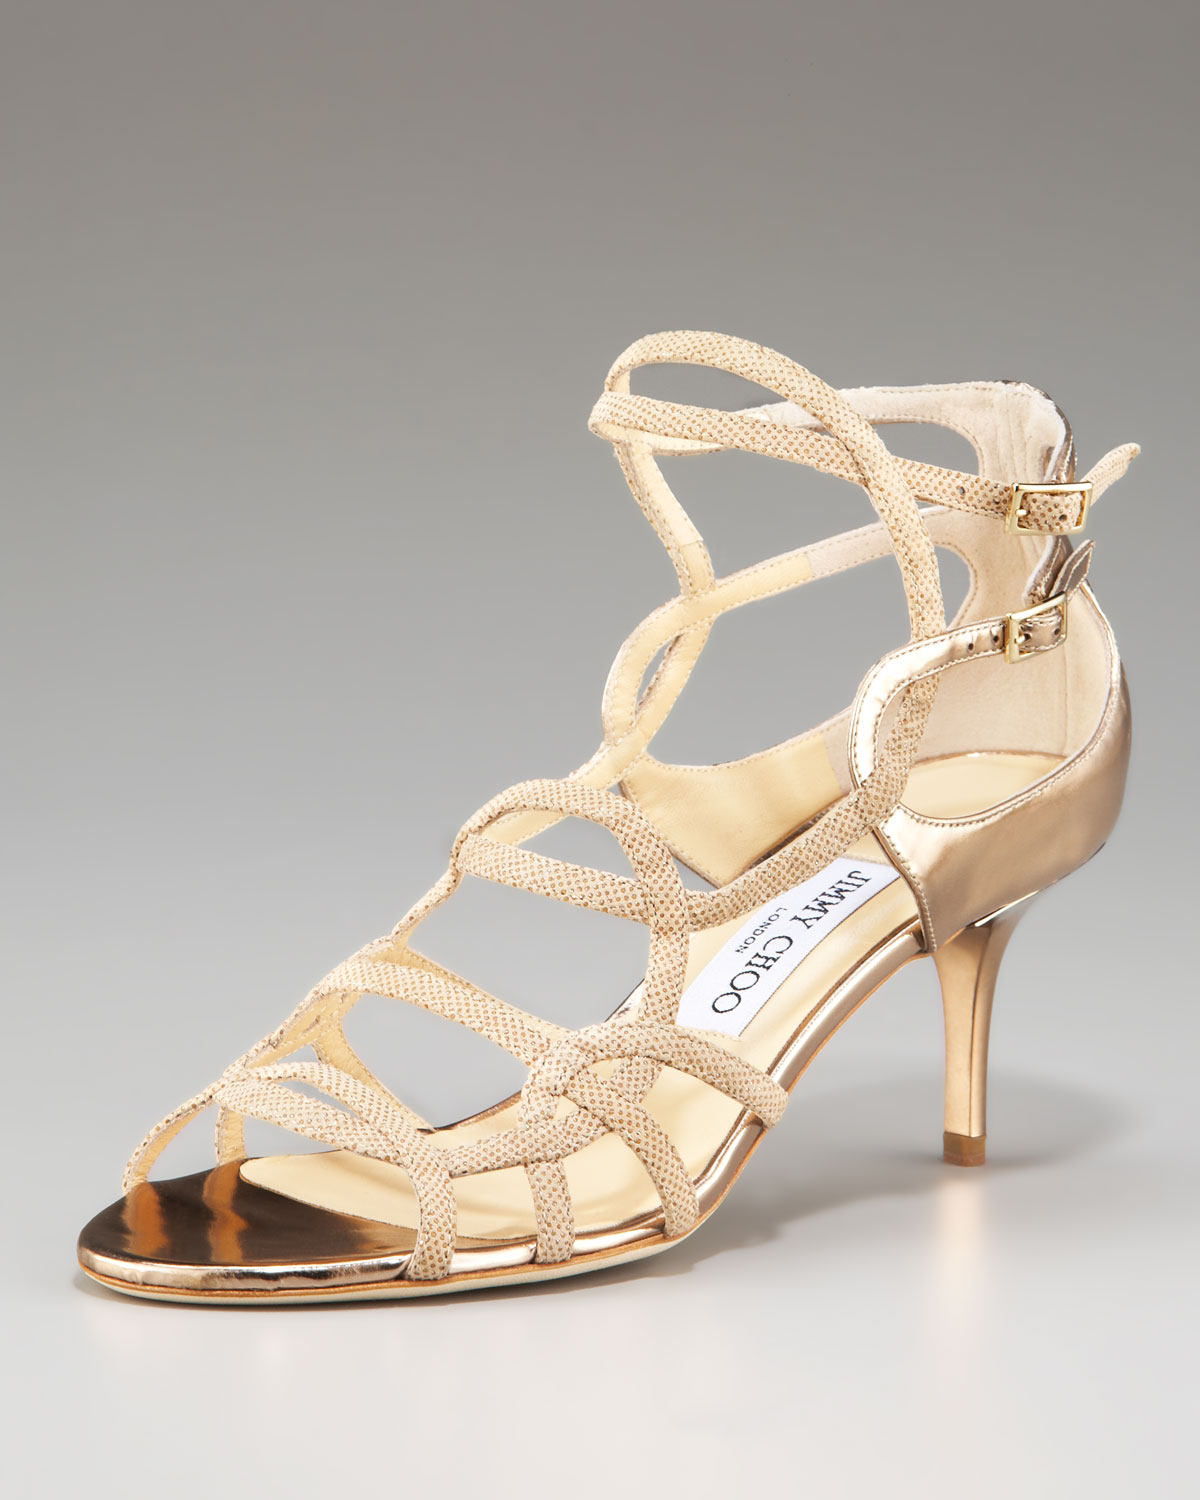 Jimmy choo Strappy Low-heel Sandal in Natural  Lyst